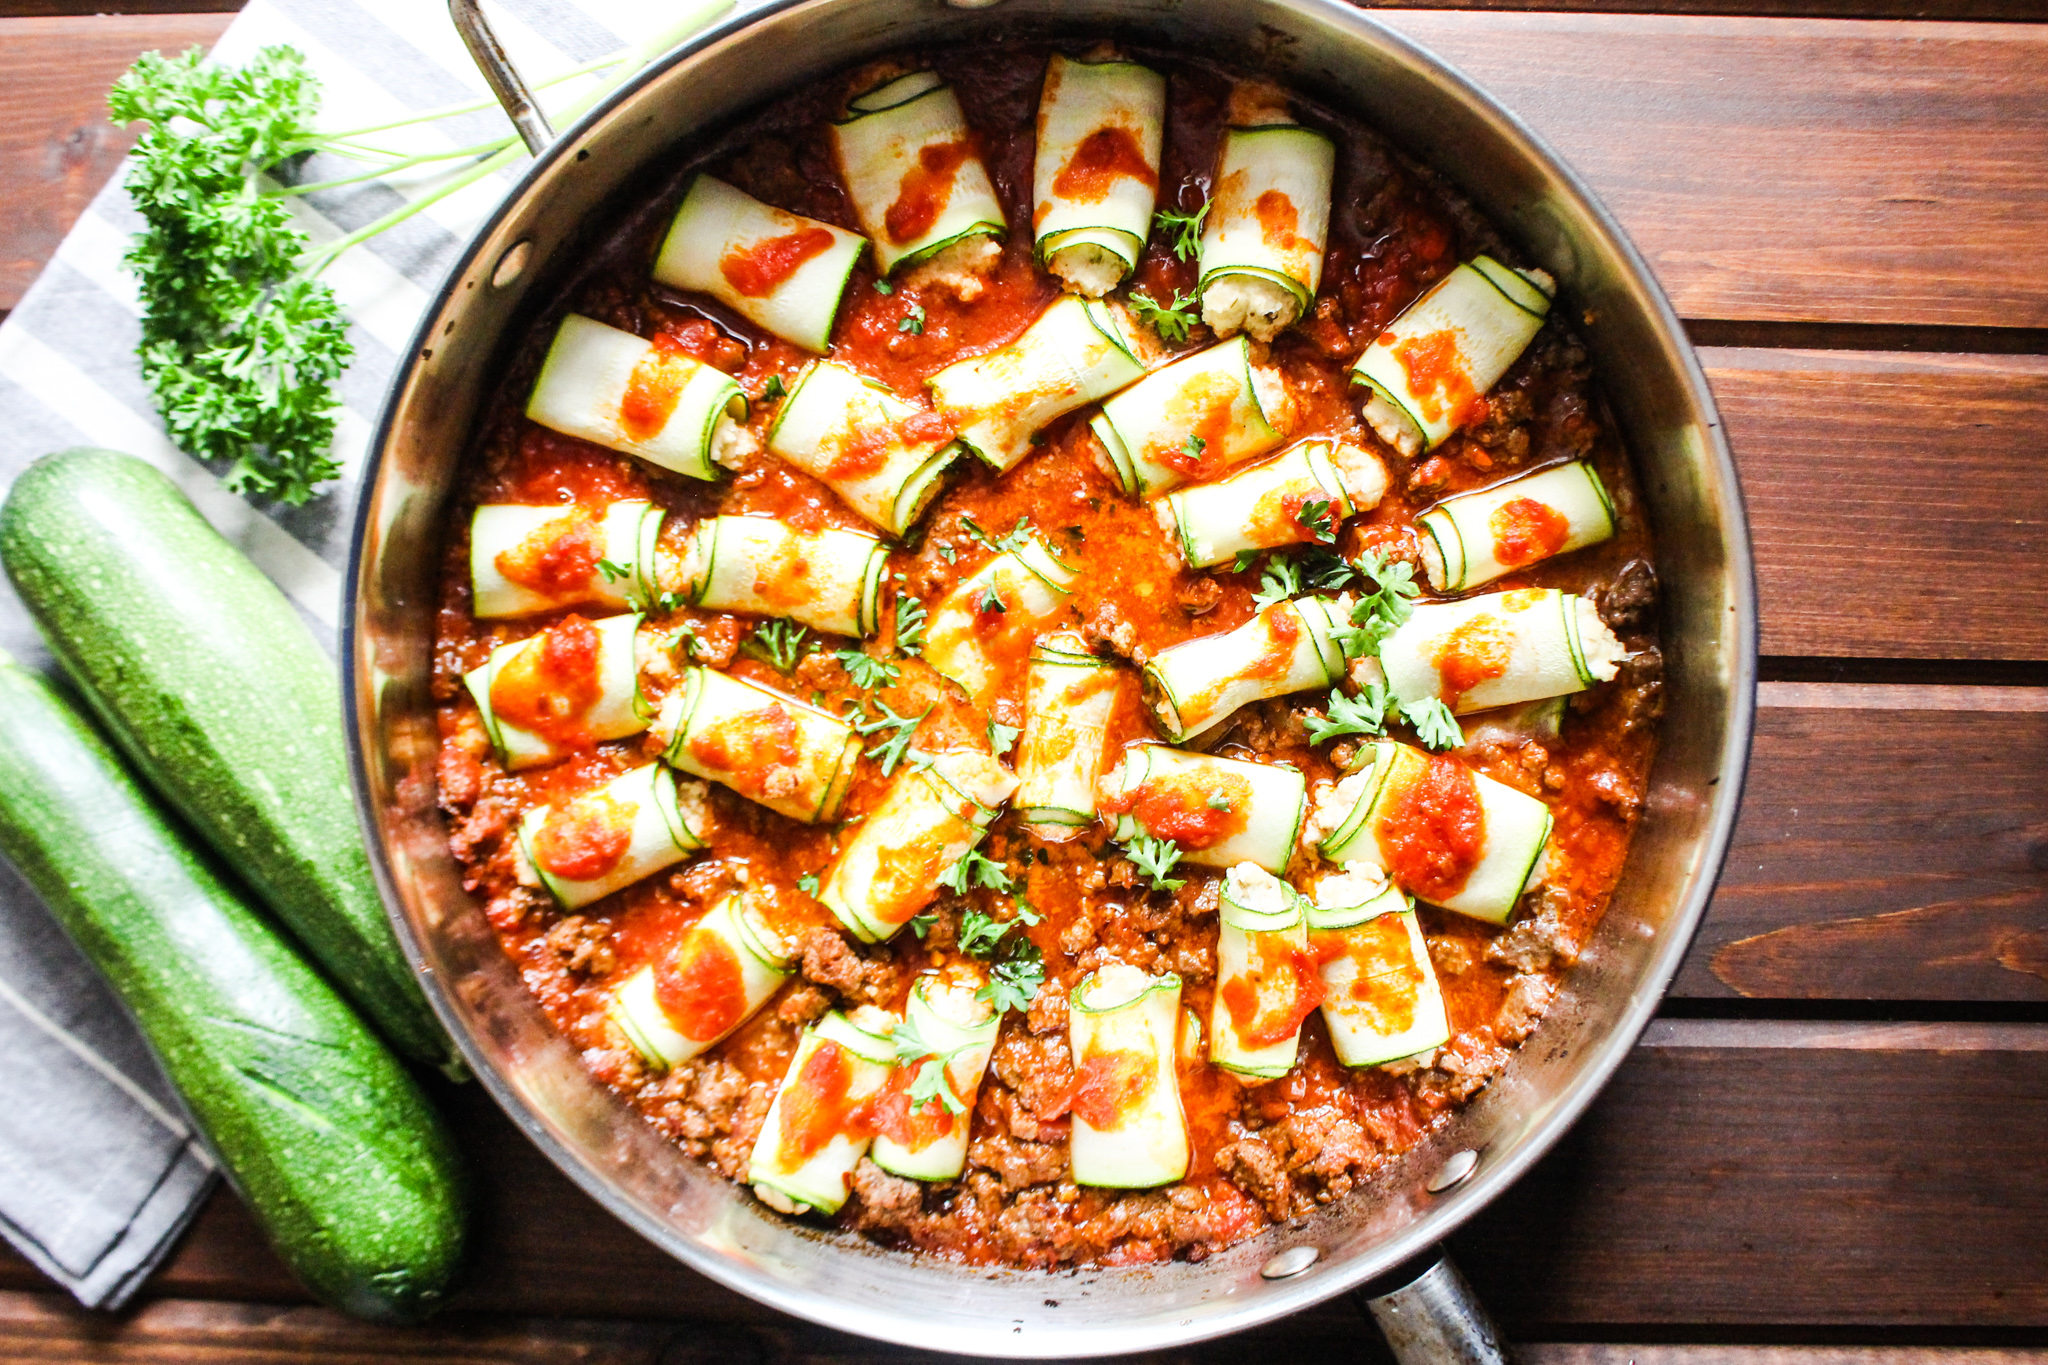 Photo of skillet with zucchini rollatini in red meat sauce.